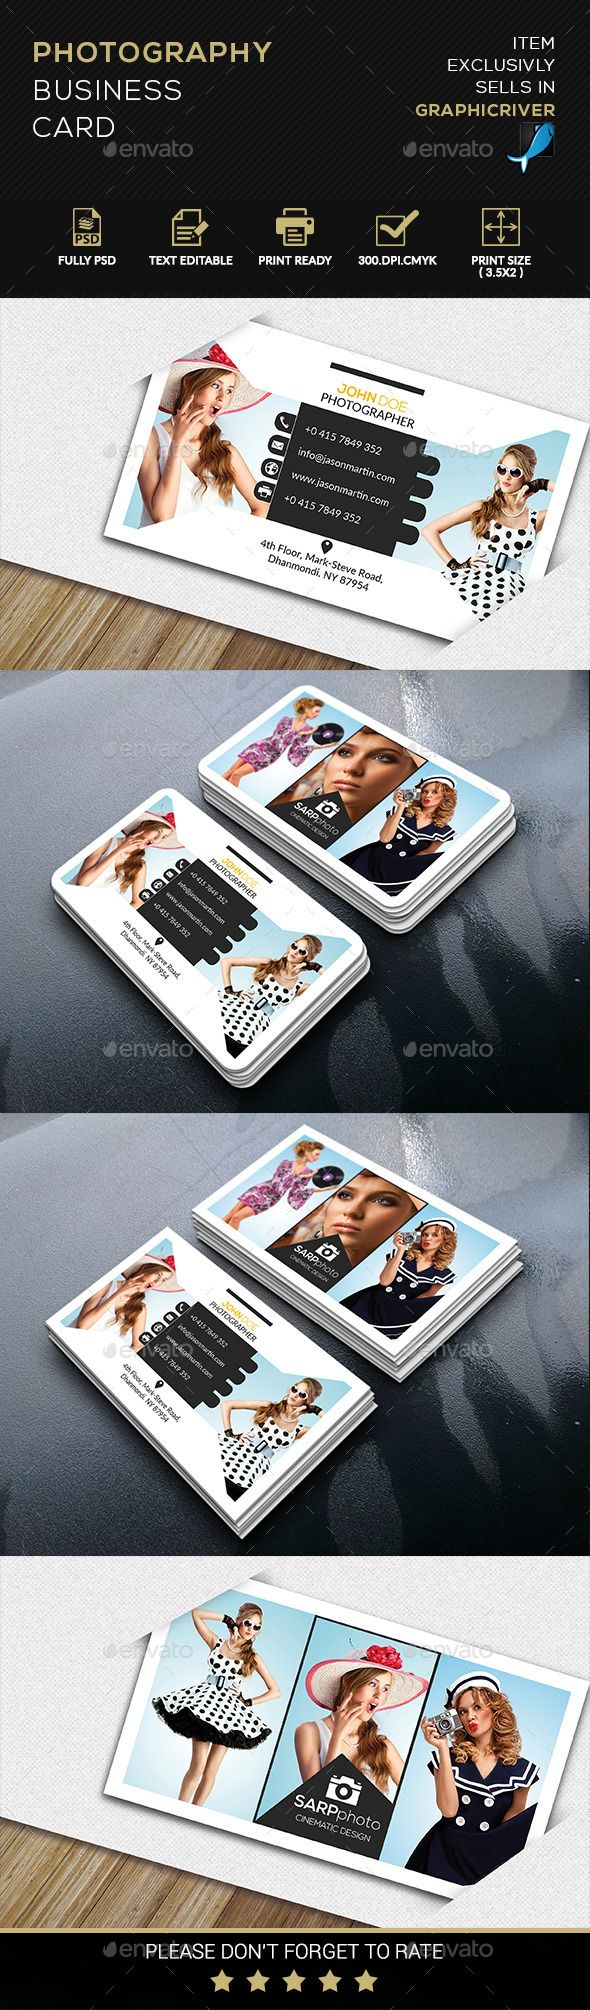 165 best photography business card images on pinterest photography fashion photography business card colourmoves